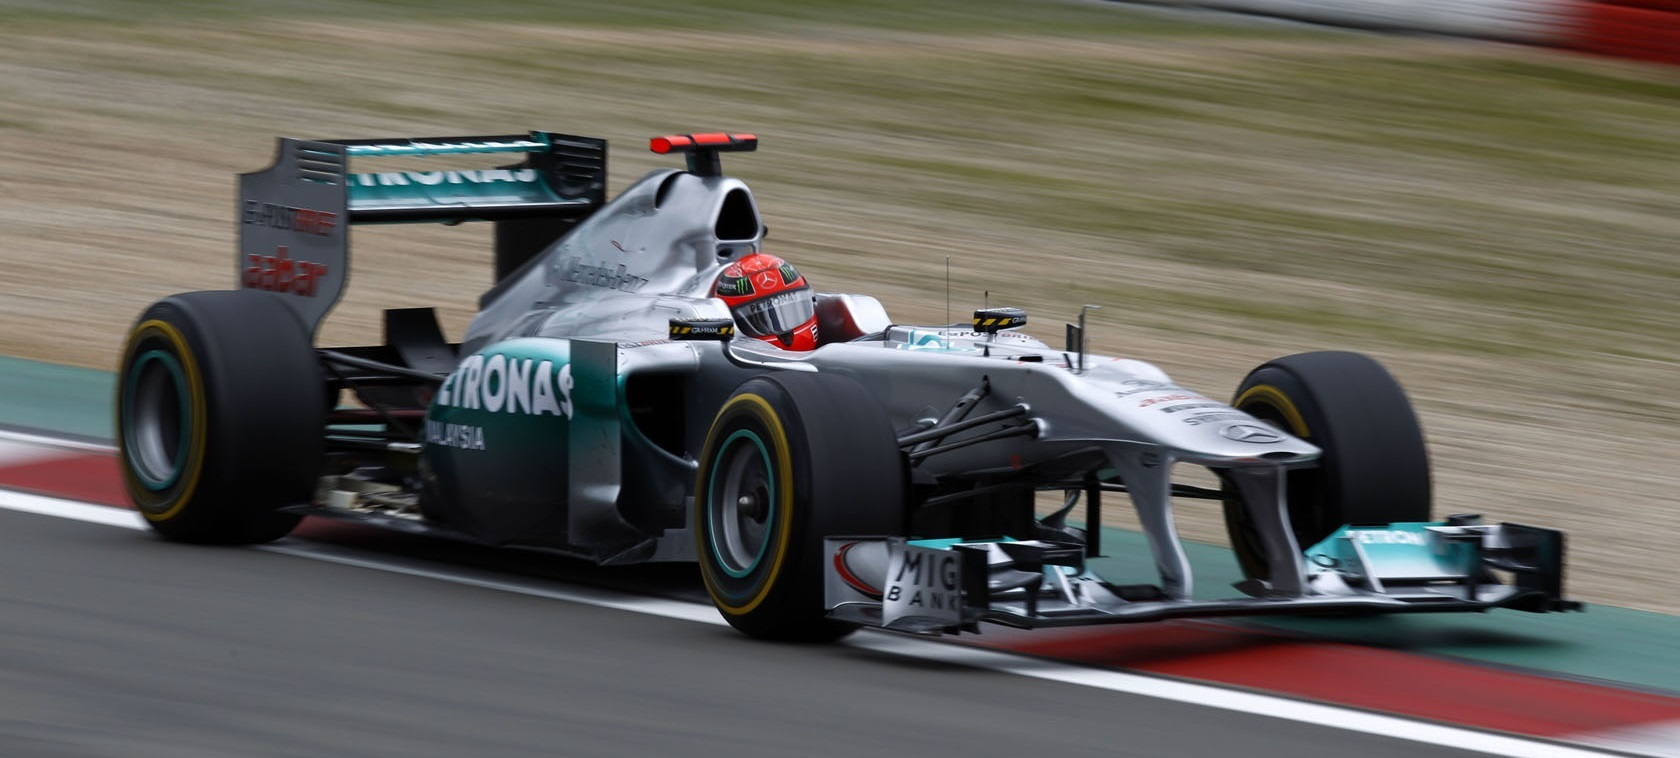 Michael Schumacher Mercedes 2011 Nürburgring